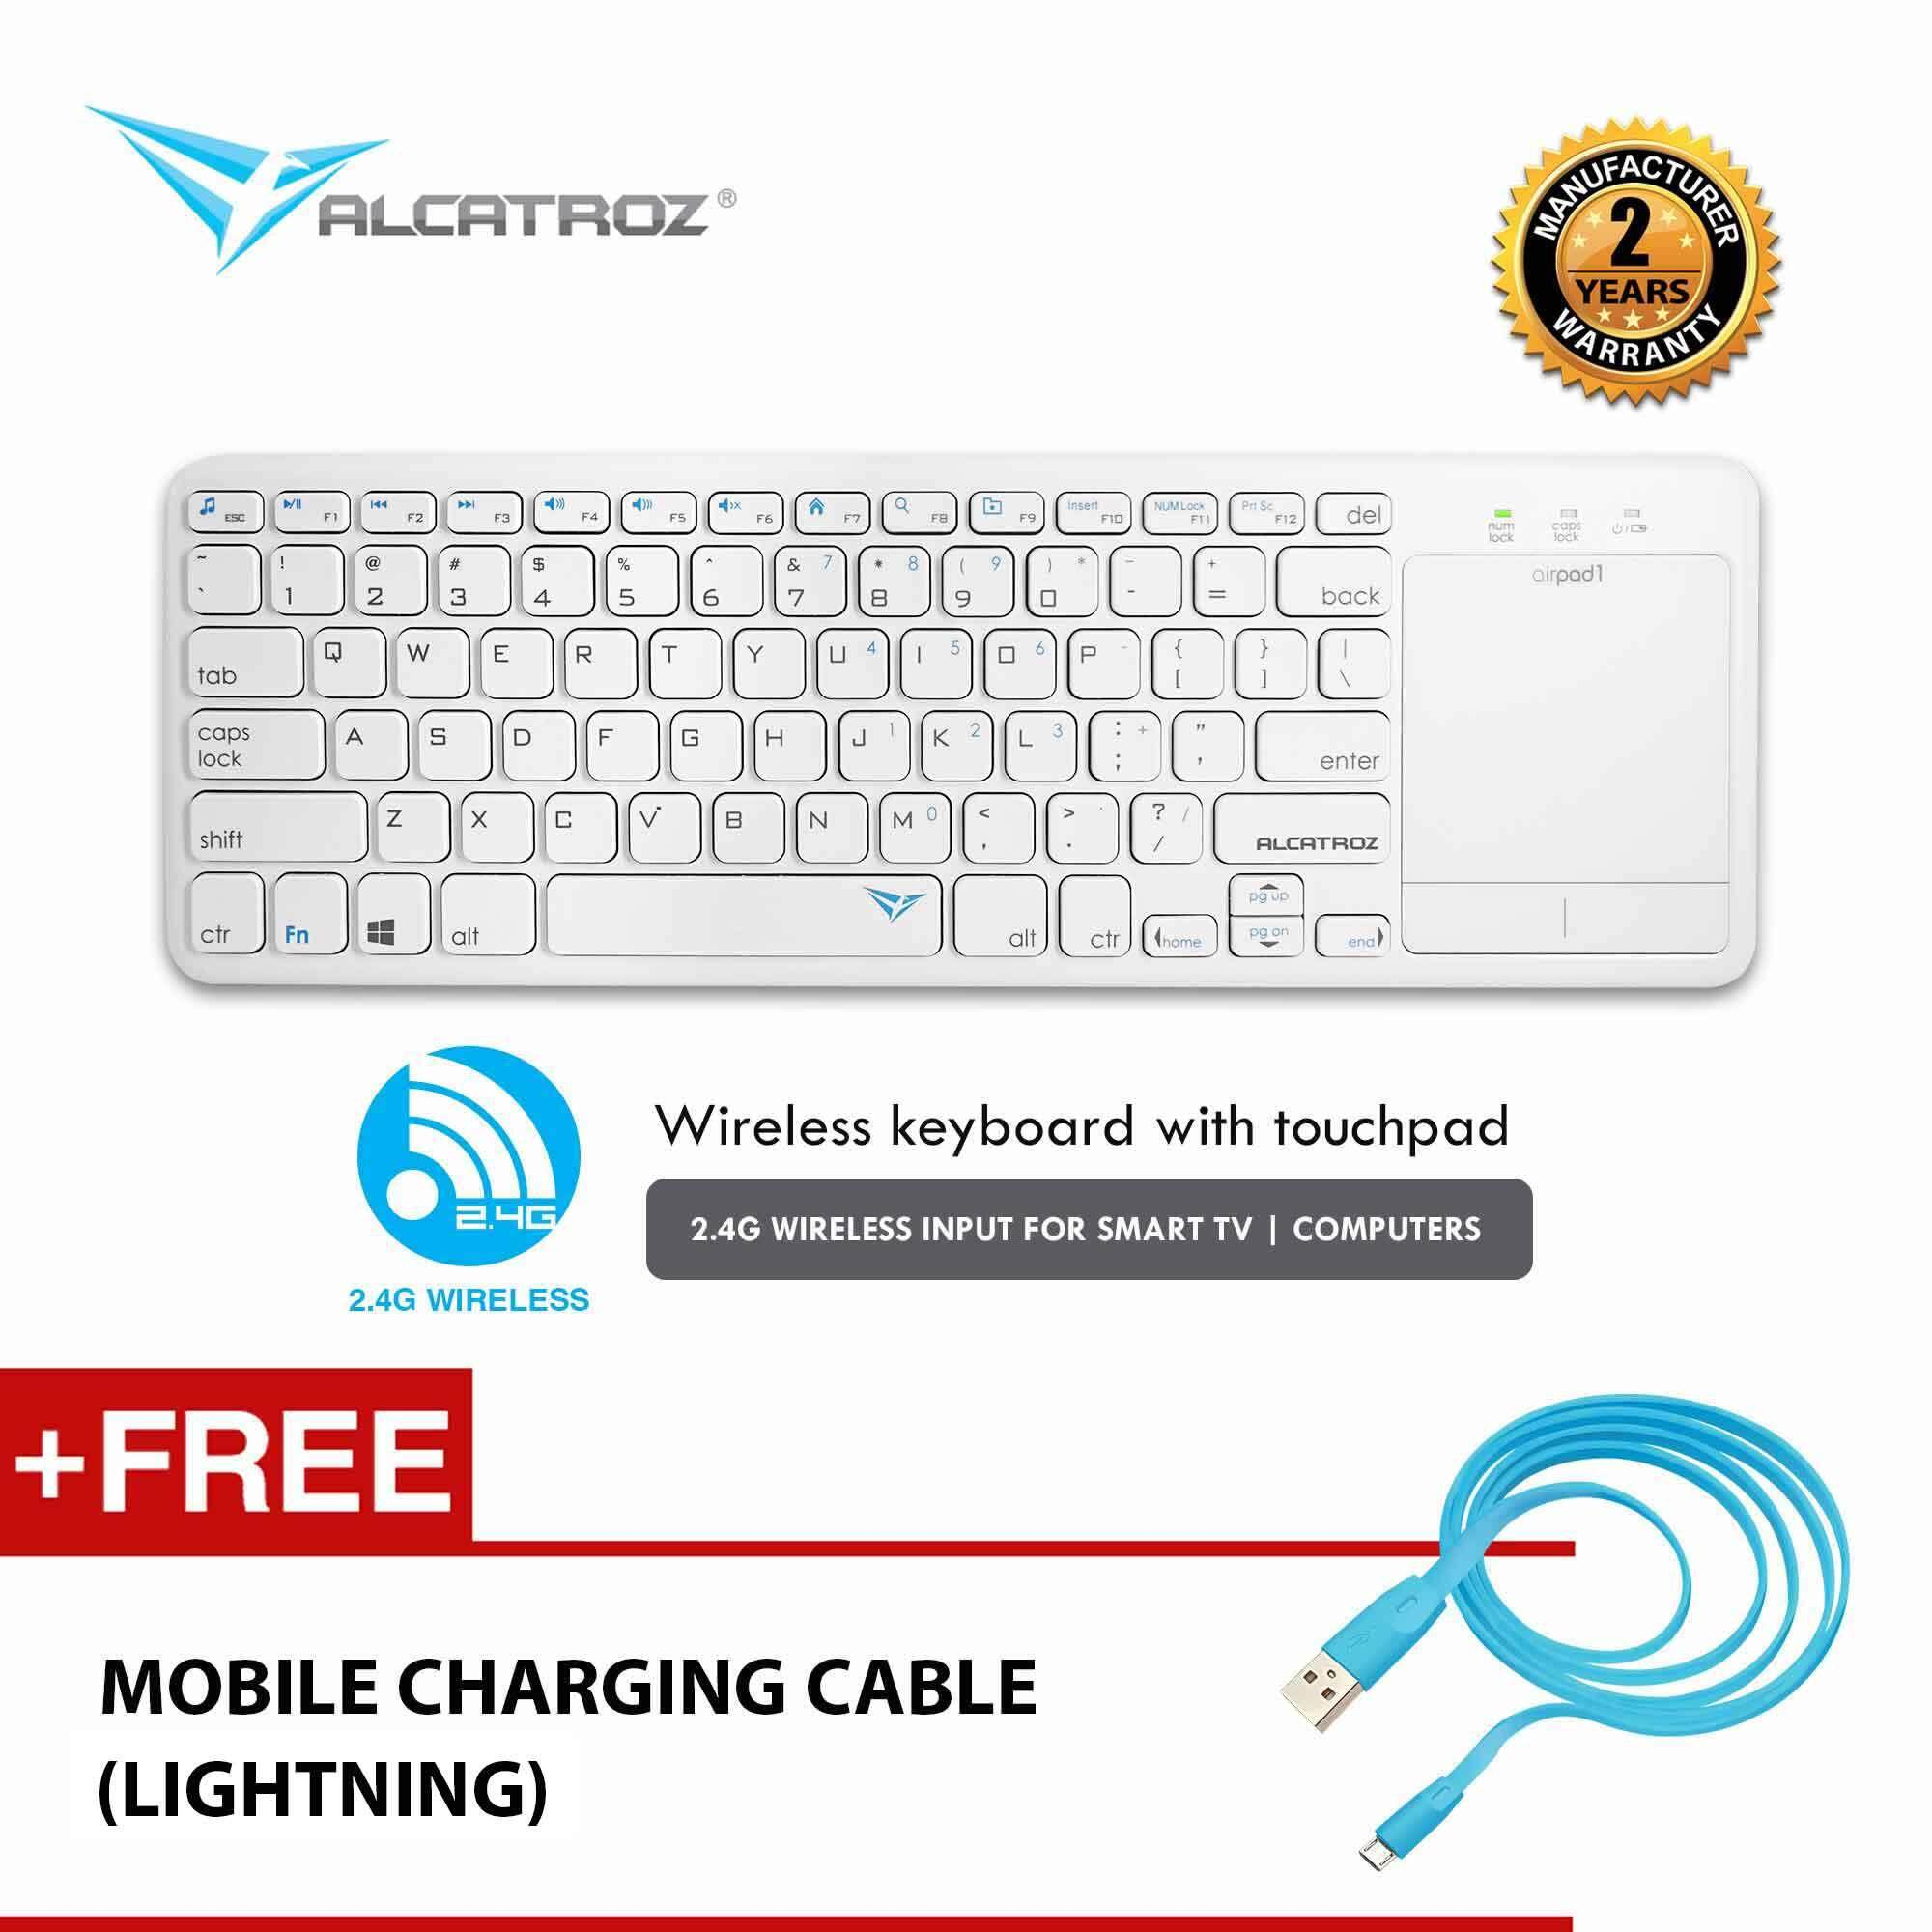 Alcatroz AirPad 1 Wireless Keyboard With Touchpad for Smart TV & Computer (PS4 Keyboard Compatible) Free Charging Cable Malaysia